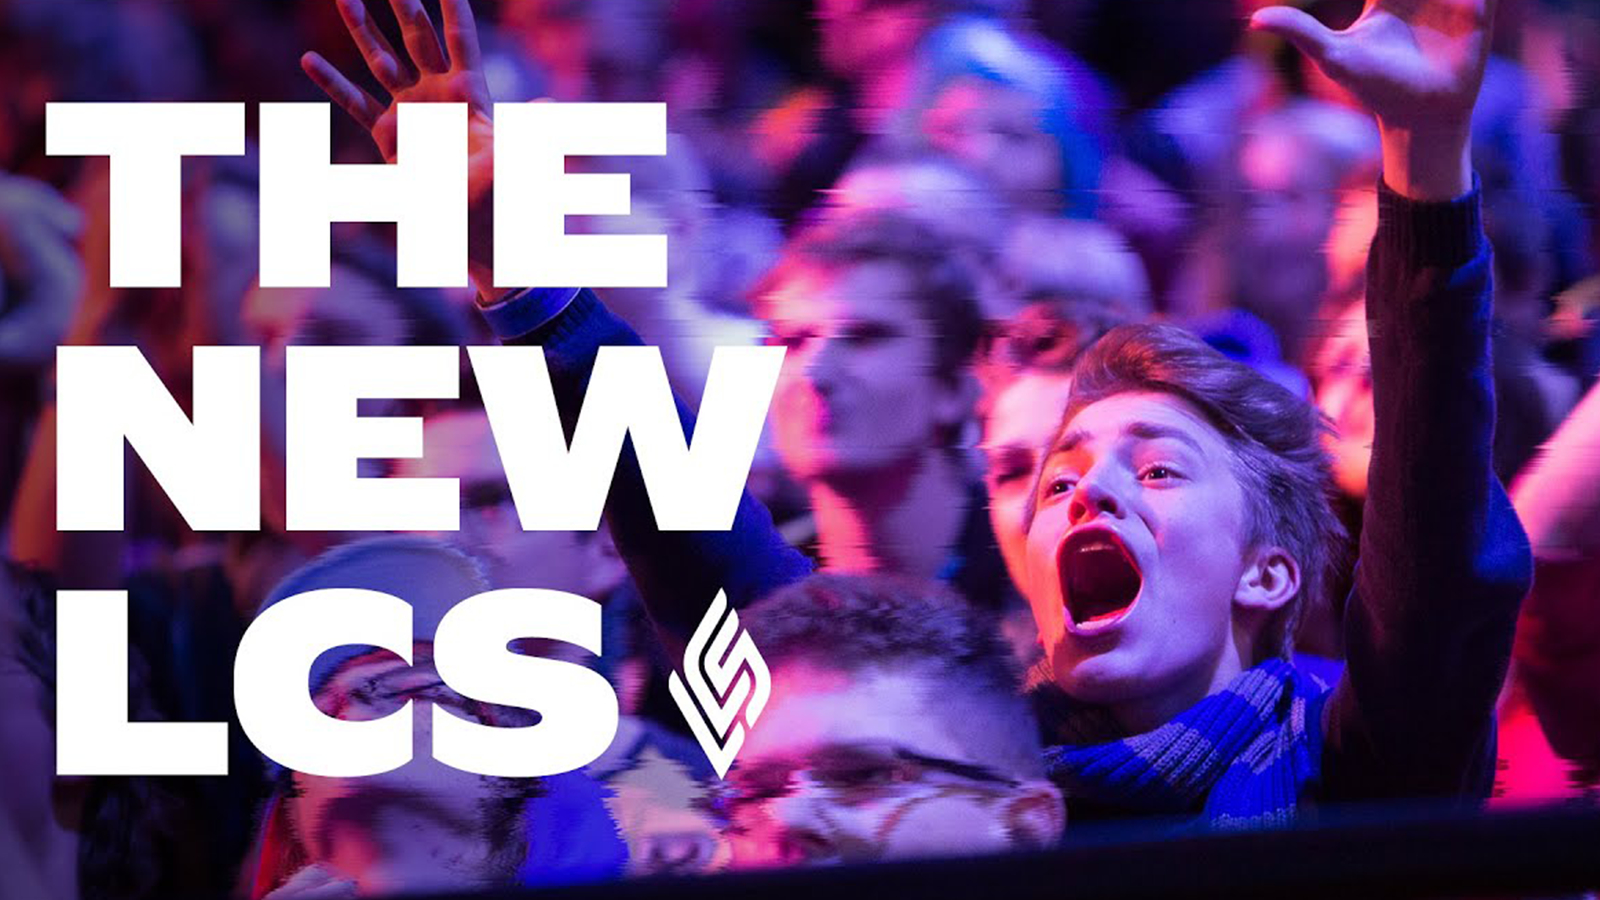 Riot Games unveils new LCS rebrand for 2021 season.